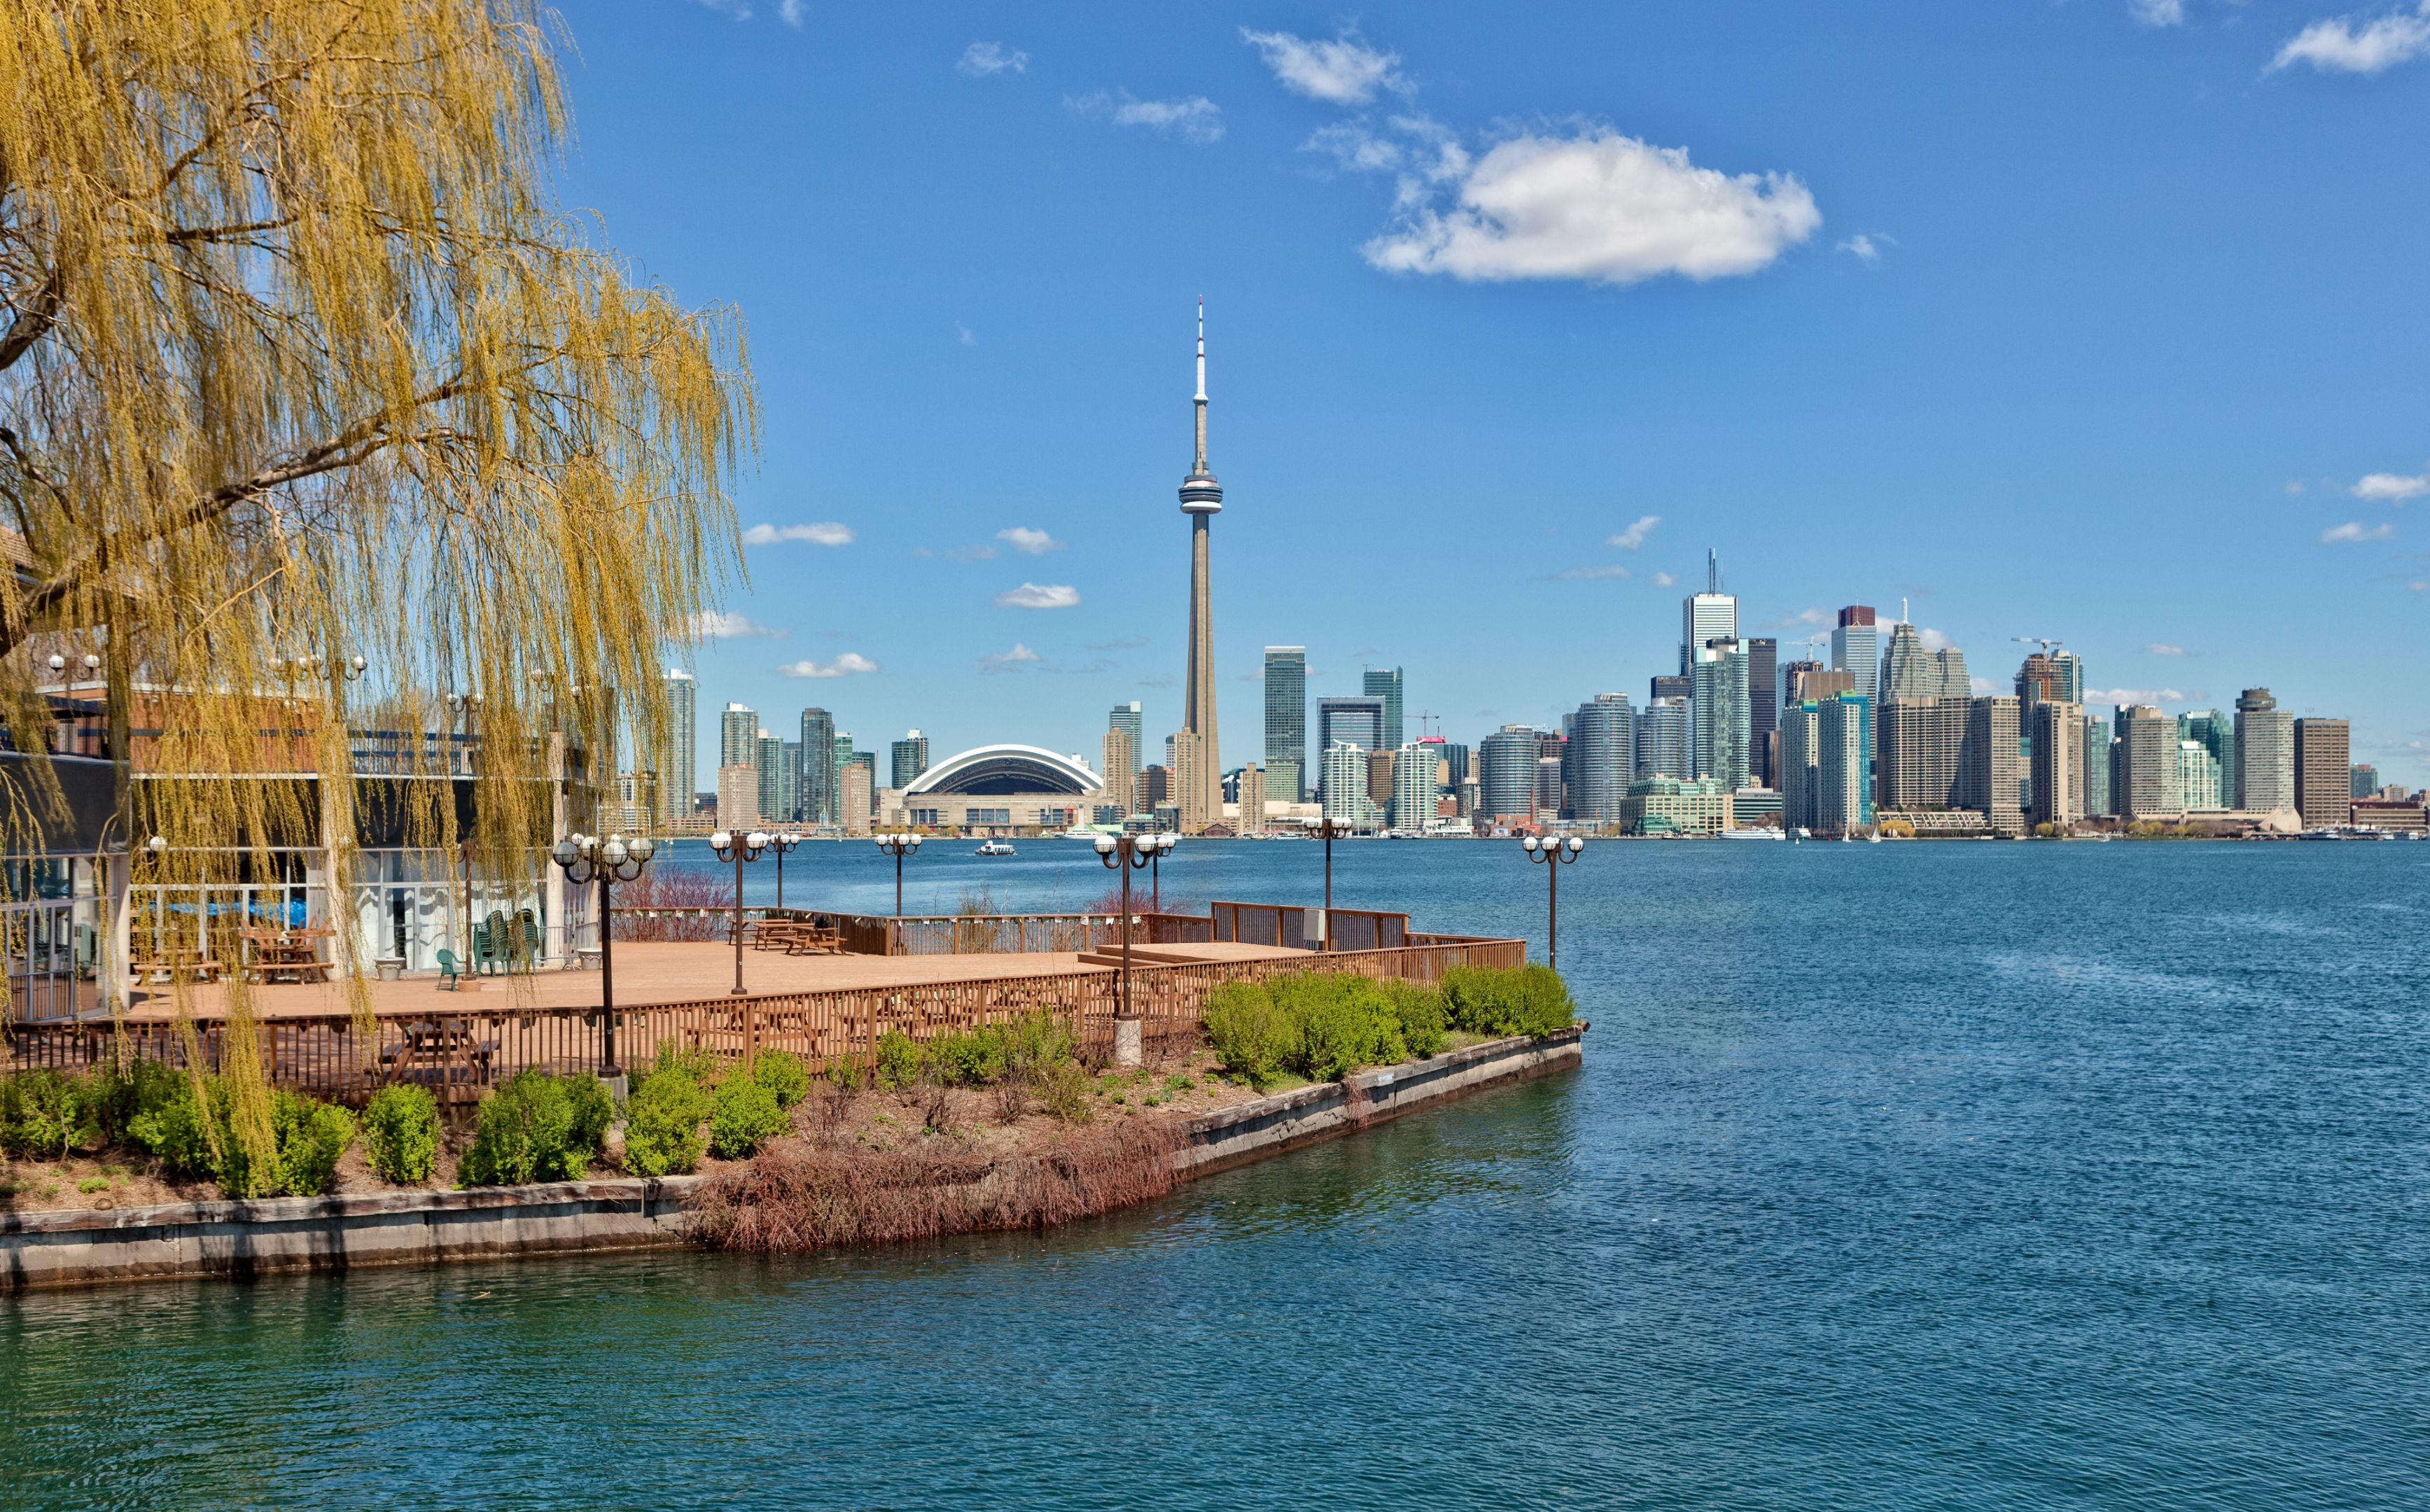 Toronto Island with a view of Toronto city in the background